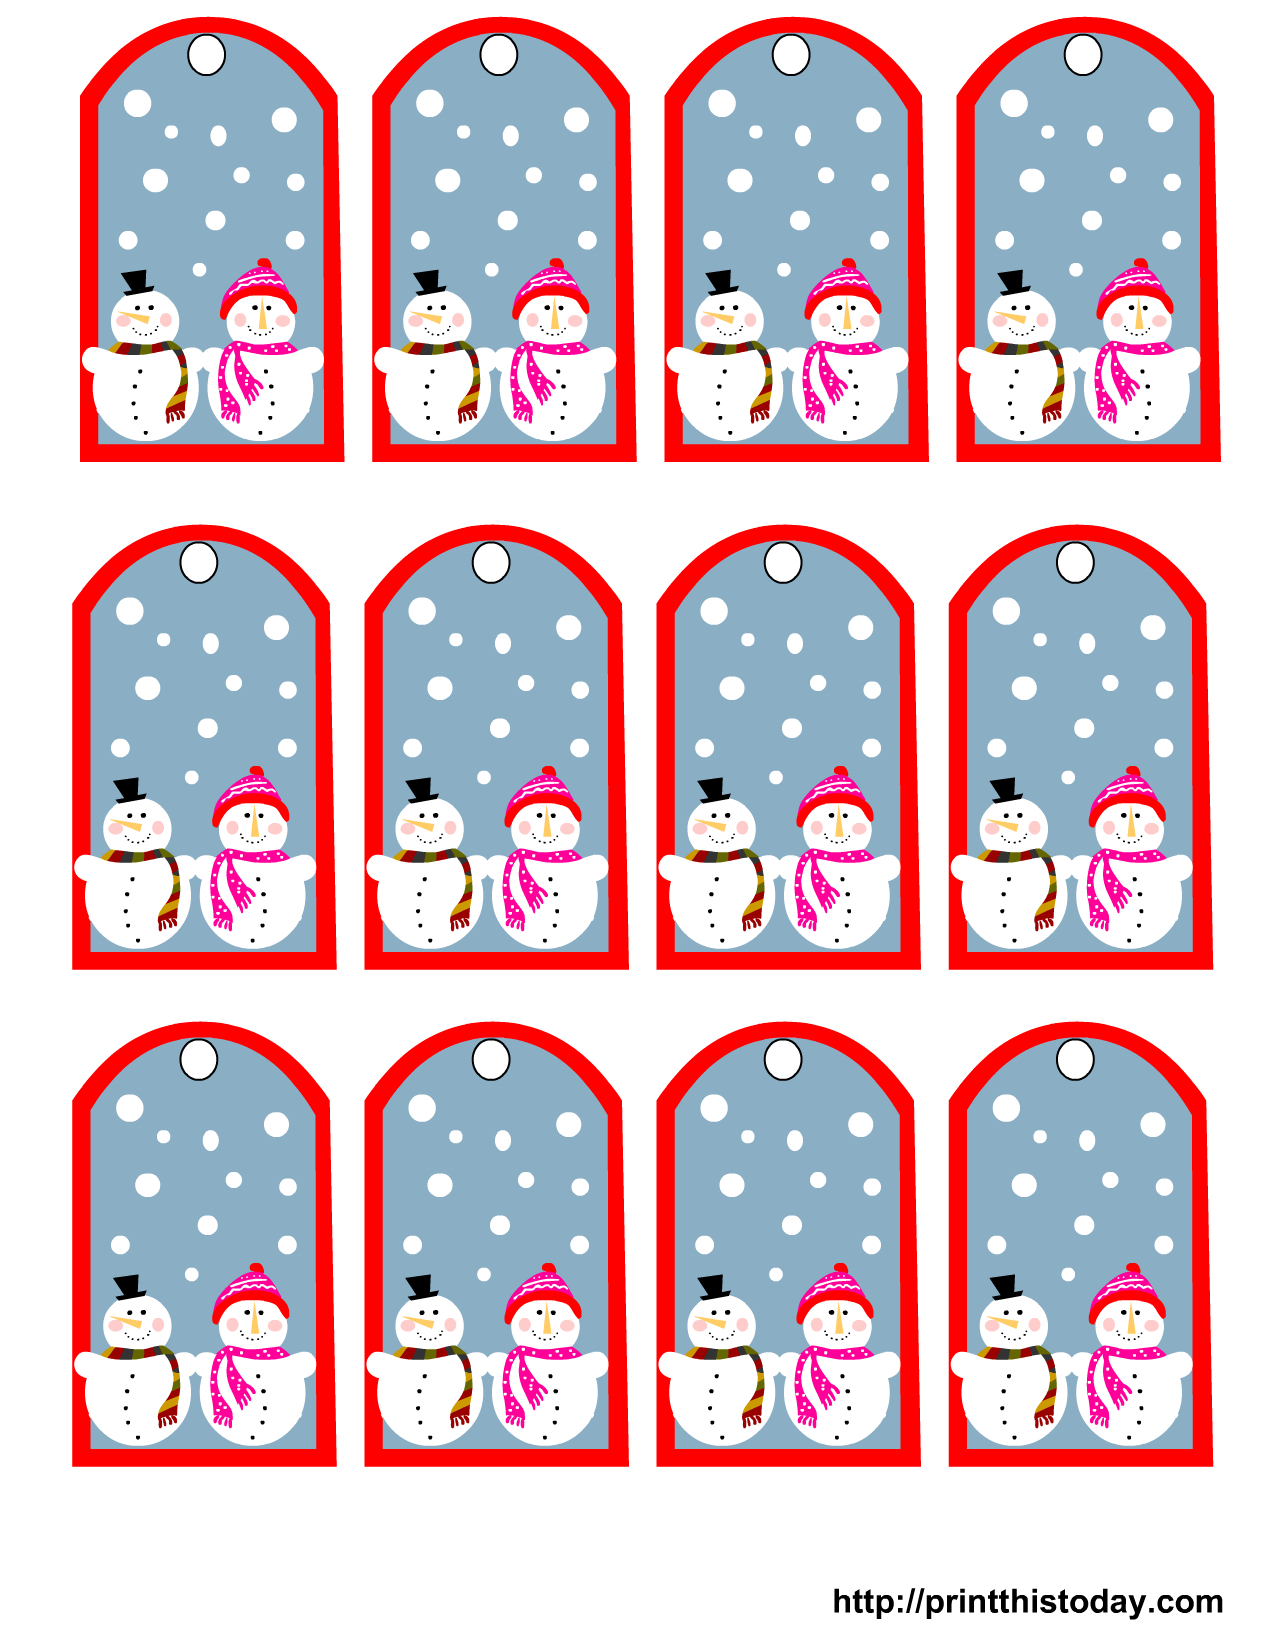 Free Printable Snowman Stationery